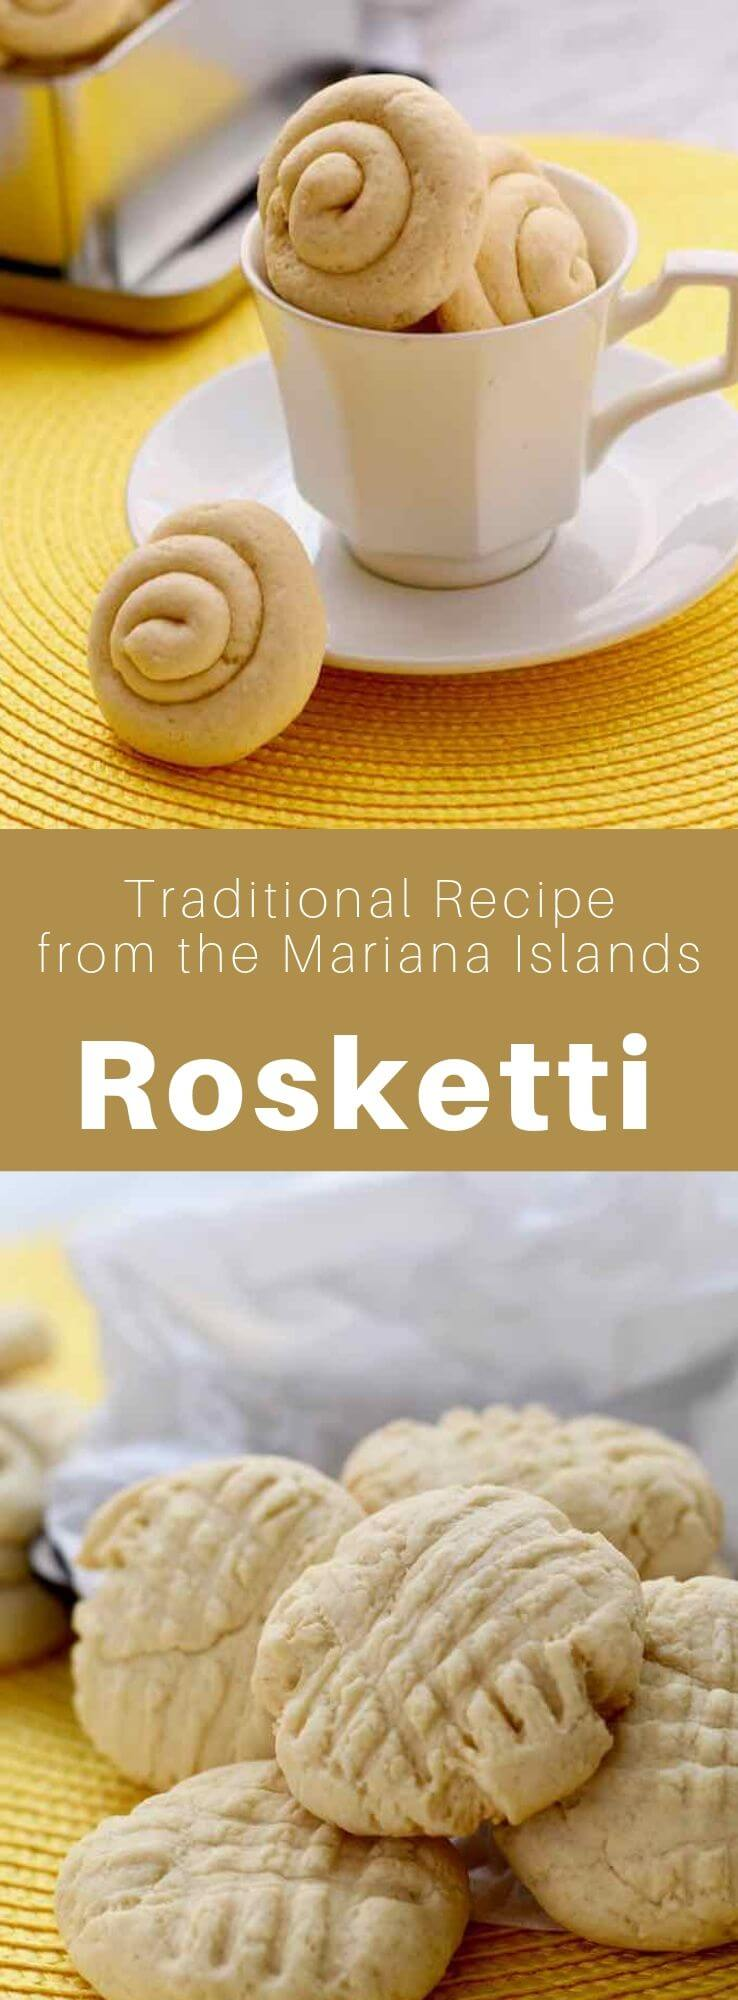 Rosketti (or rosketi) are delicious traditional shortbread biscuits from the island of Guam that are prepared with cornstarch. #MarianaIslands #Guam #Chamorro #SouthPacific #WorldCuisine #196flavors